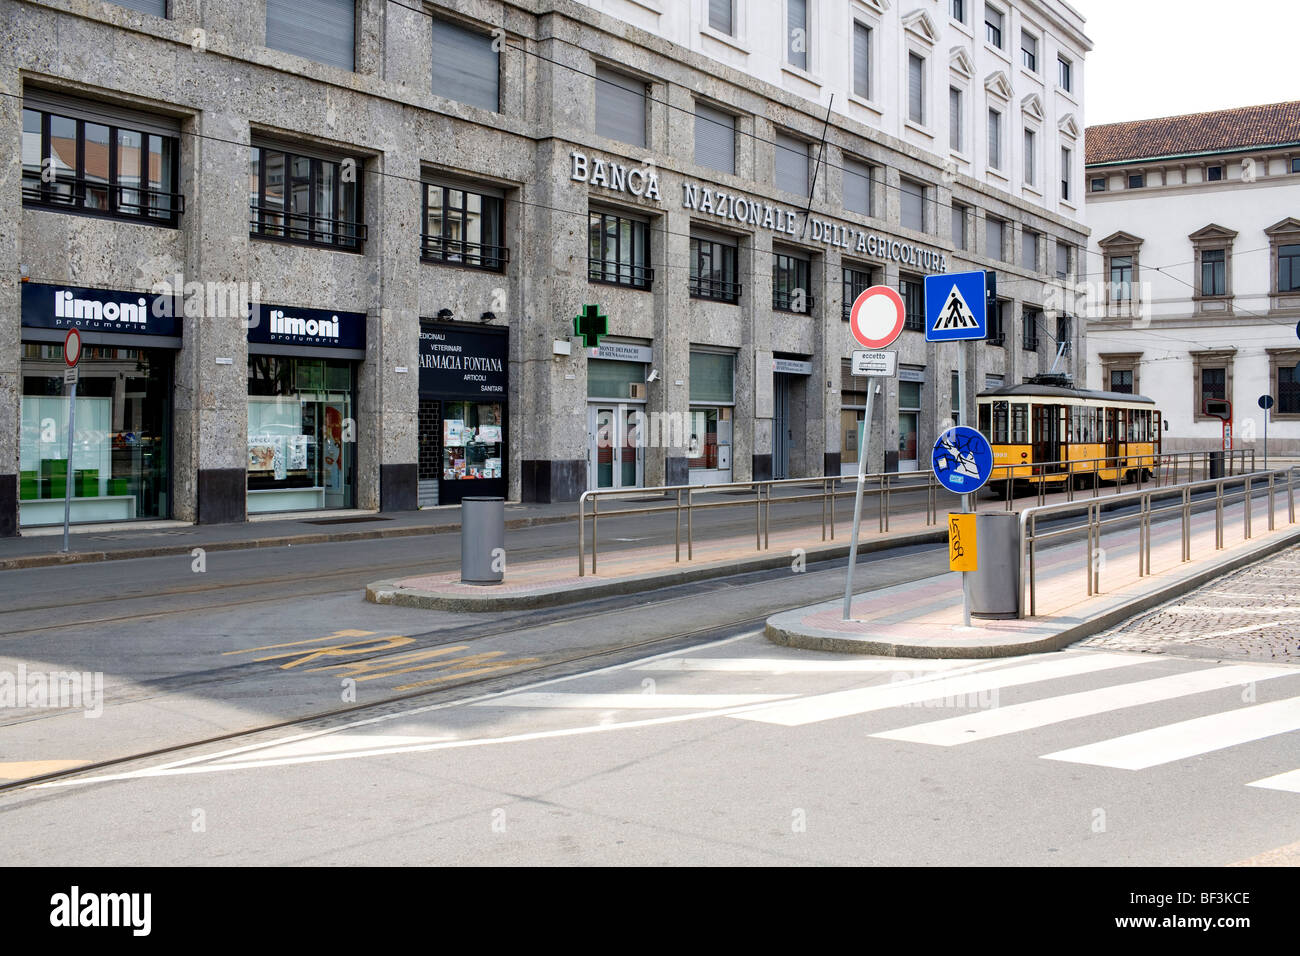 Fontana square Milan Italy where on December 12 1969 a terrorist attack happened - Stock Image